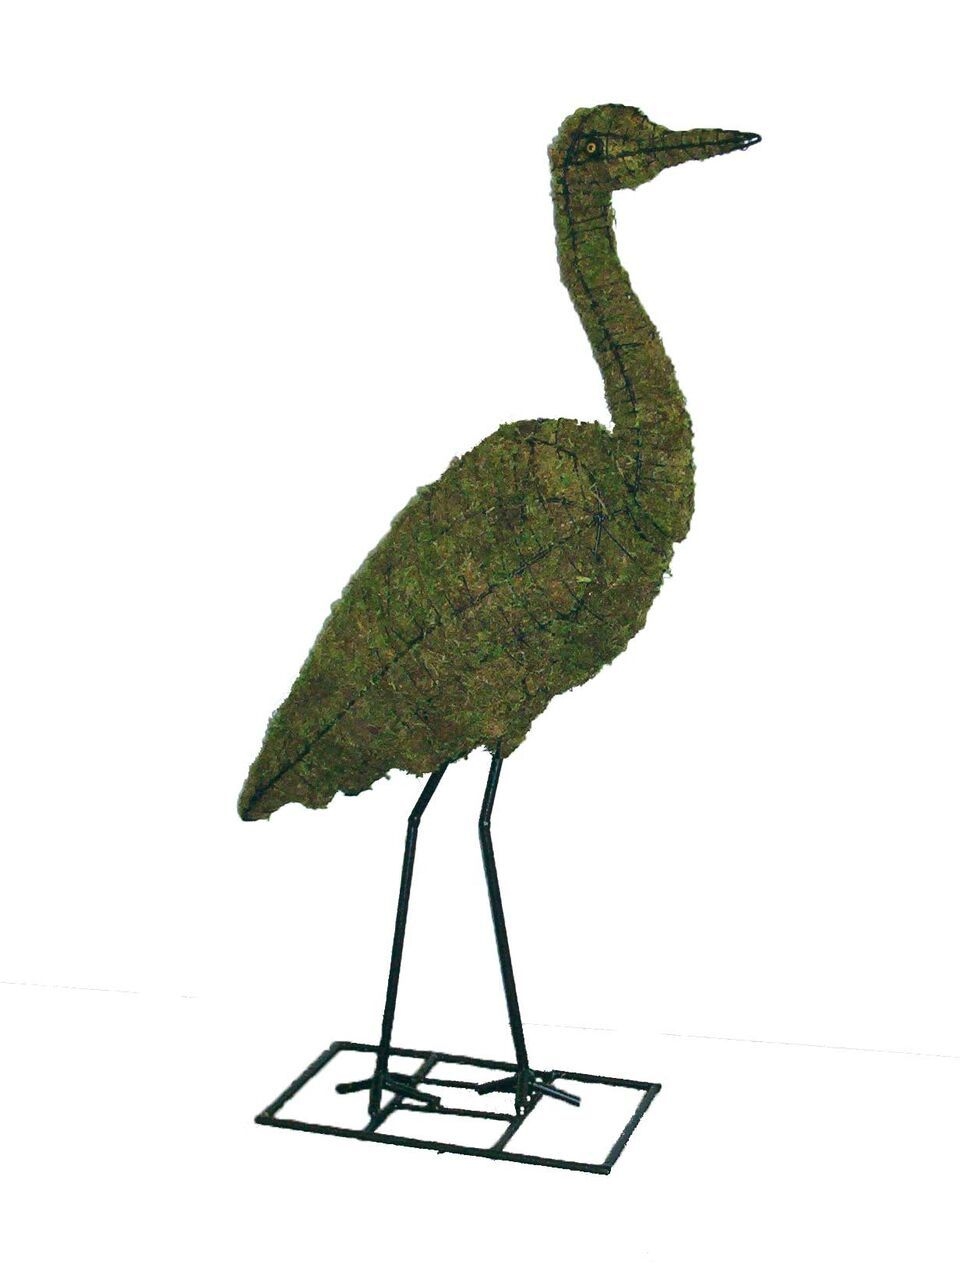 Heron Topiary Frame filled with green dyed sphagnum moss - Henderson Garden Supply